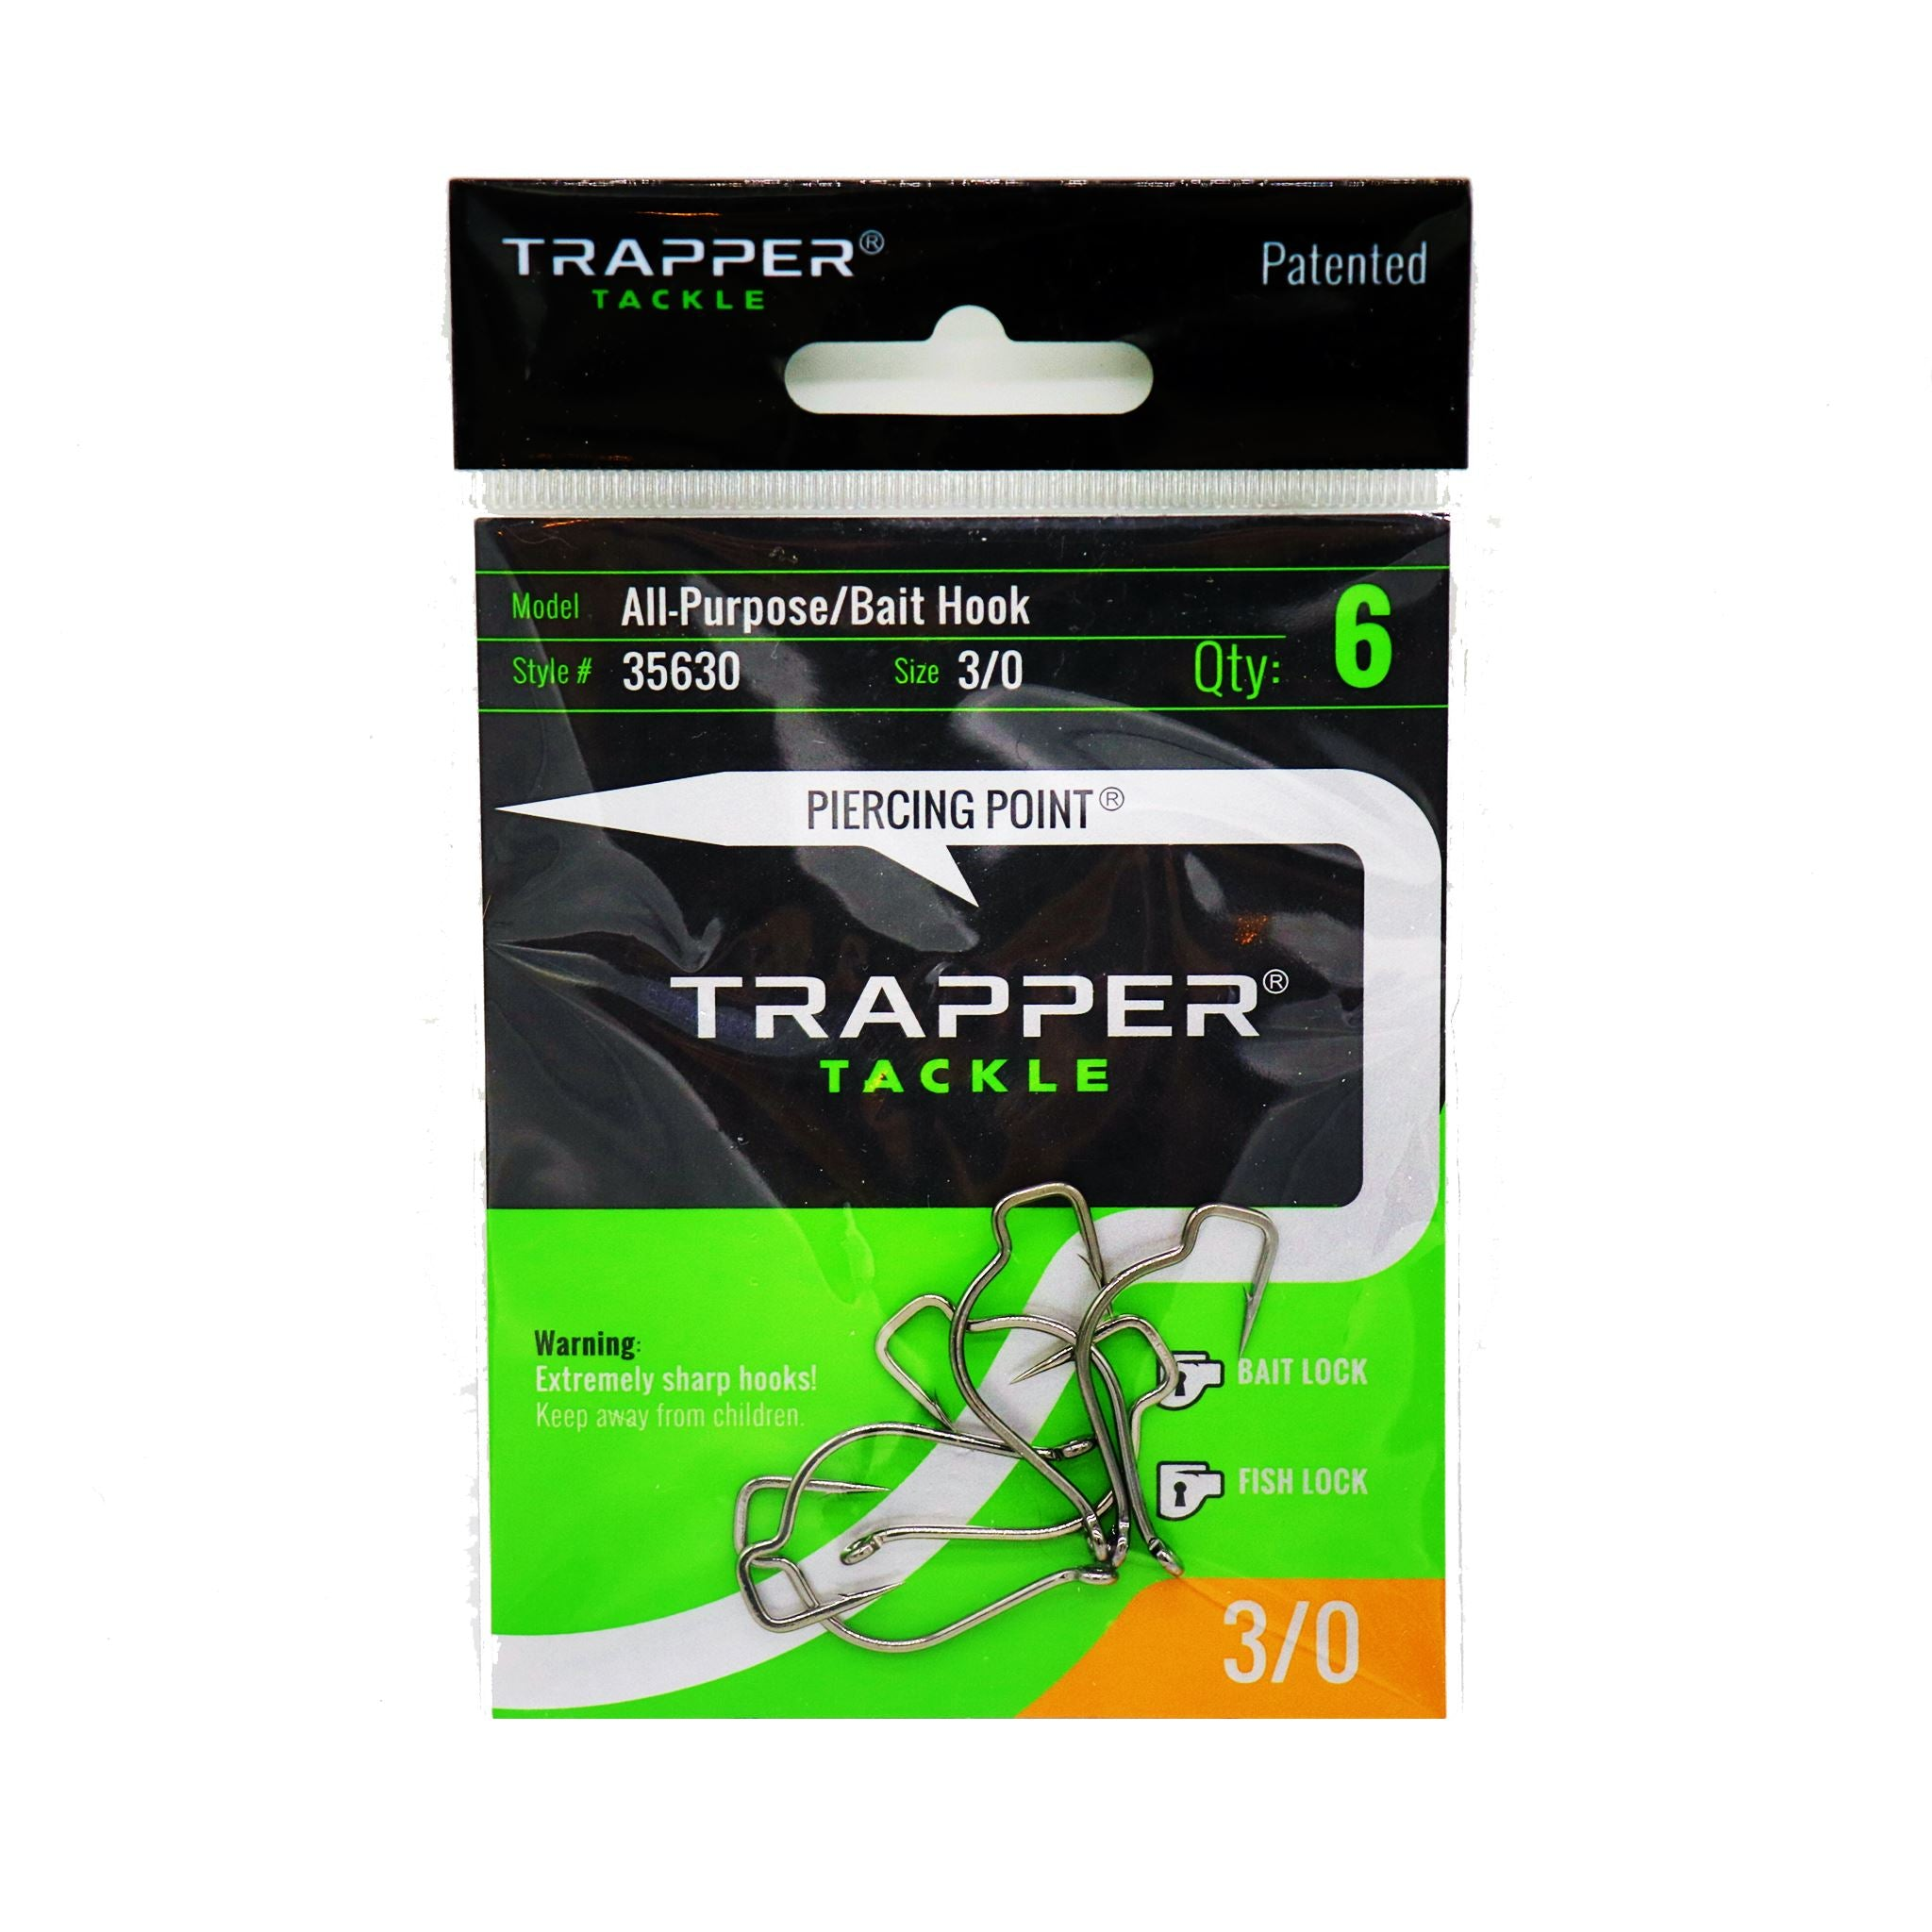 All-Purpose/Bait Hook Single Hooks Trapper Tackle LLC